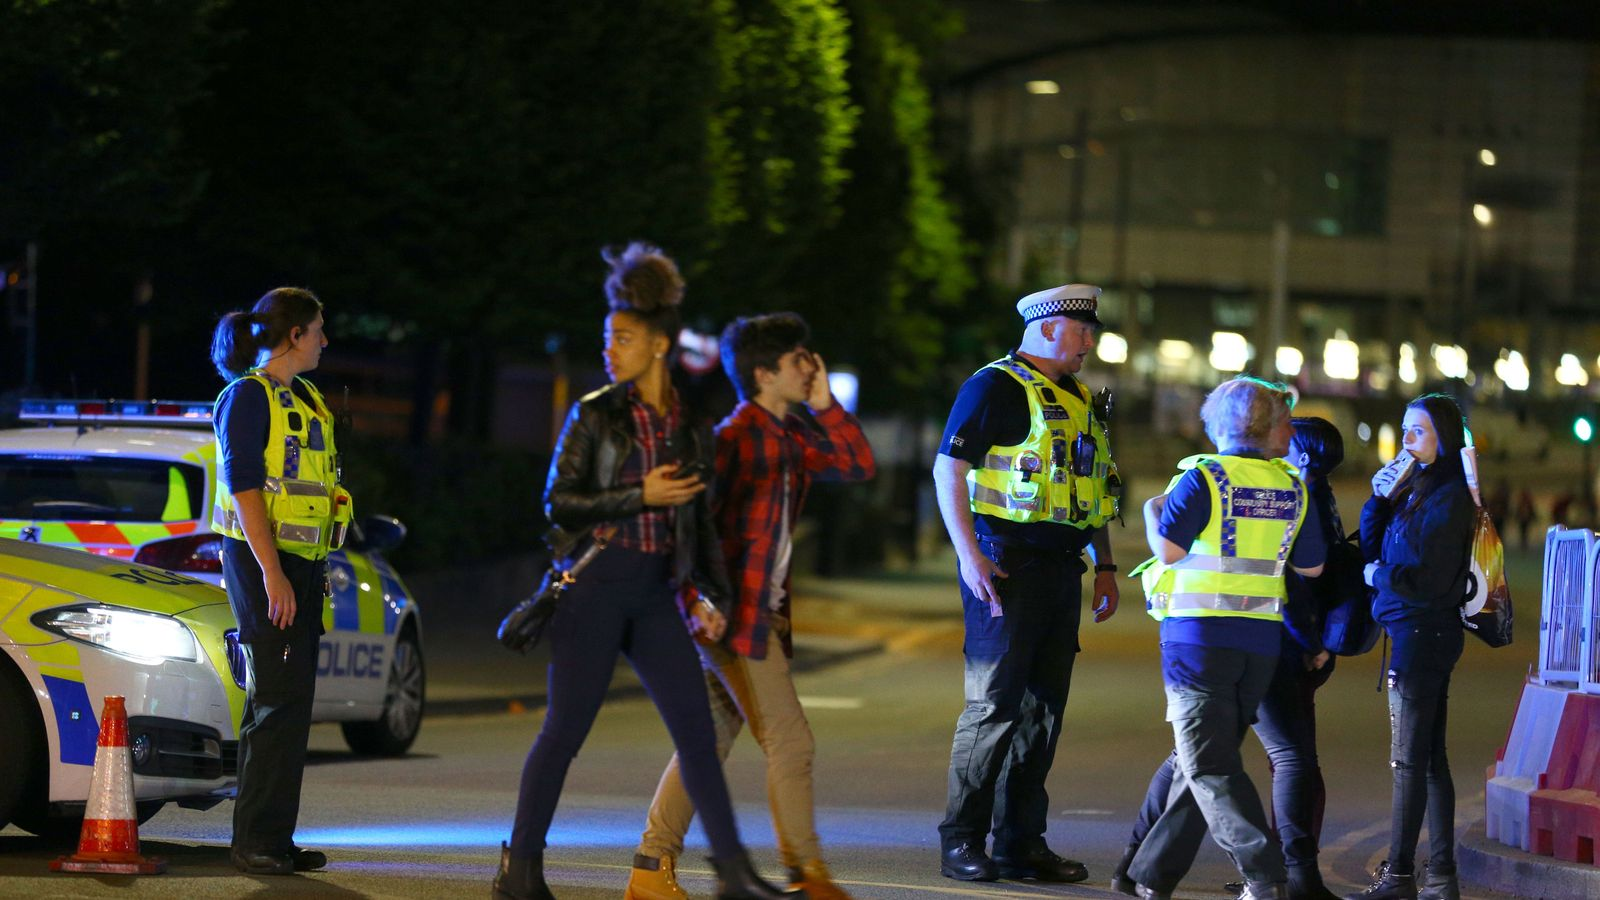 Manchester bombing: 3 more arrested after Salman Abedi identified as suspect